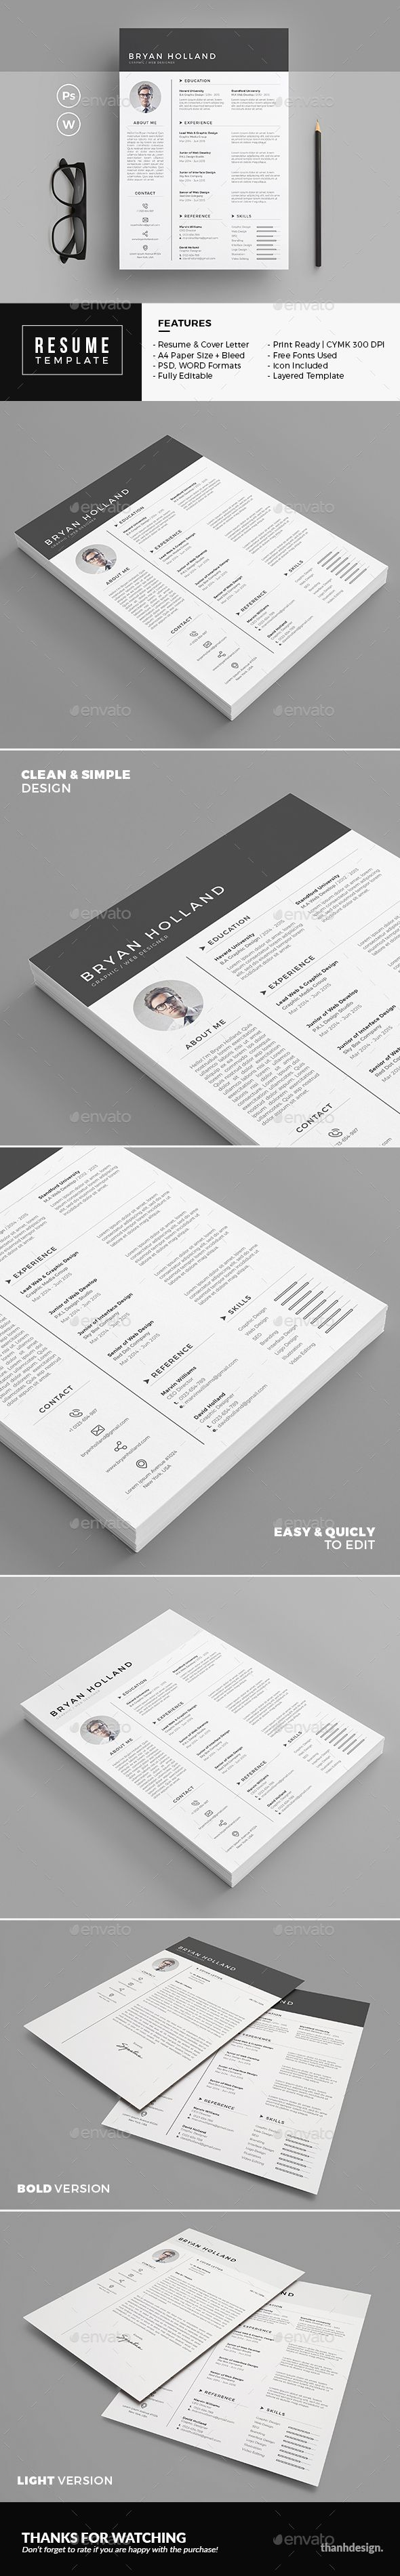 Cv And Resume Templates%0A Resume